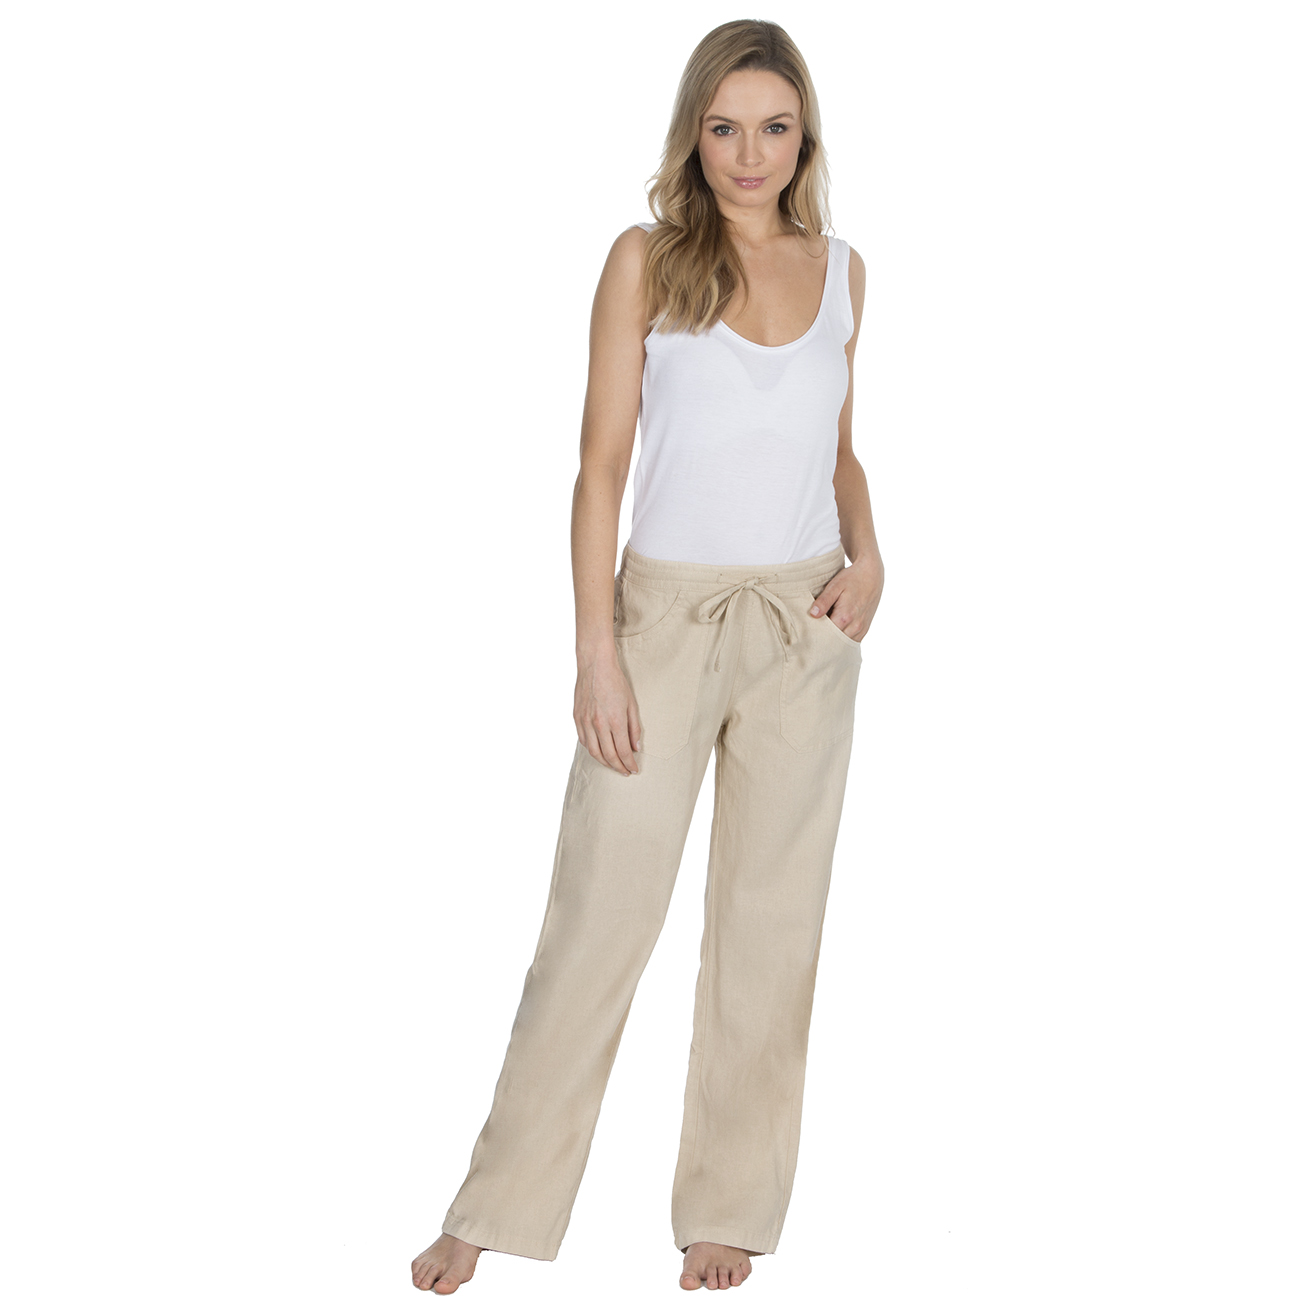 9cc82f5c227 Metzuyan Womens Linen Trousers Wide Fit Summer Pants Pockets 12-18 Plus Size